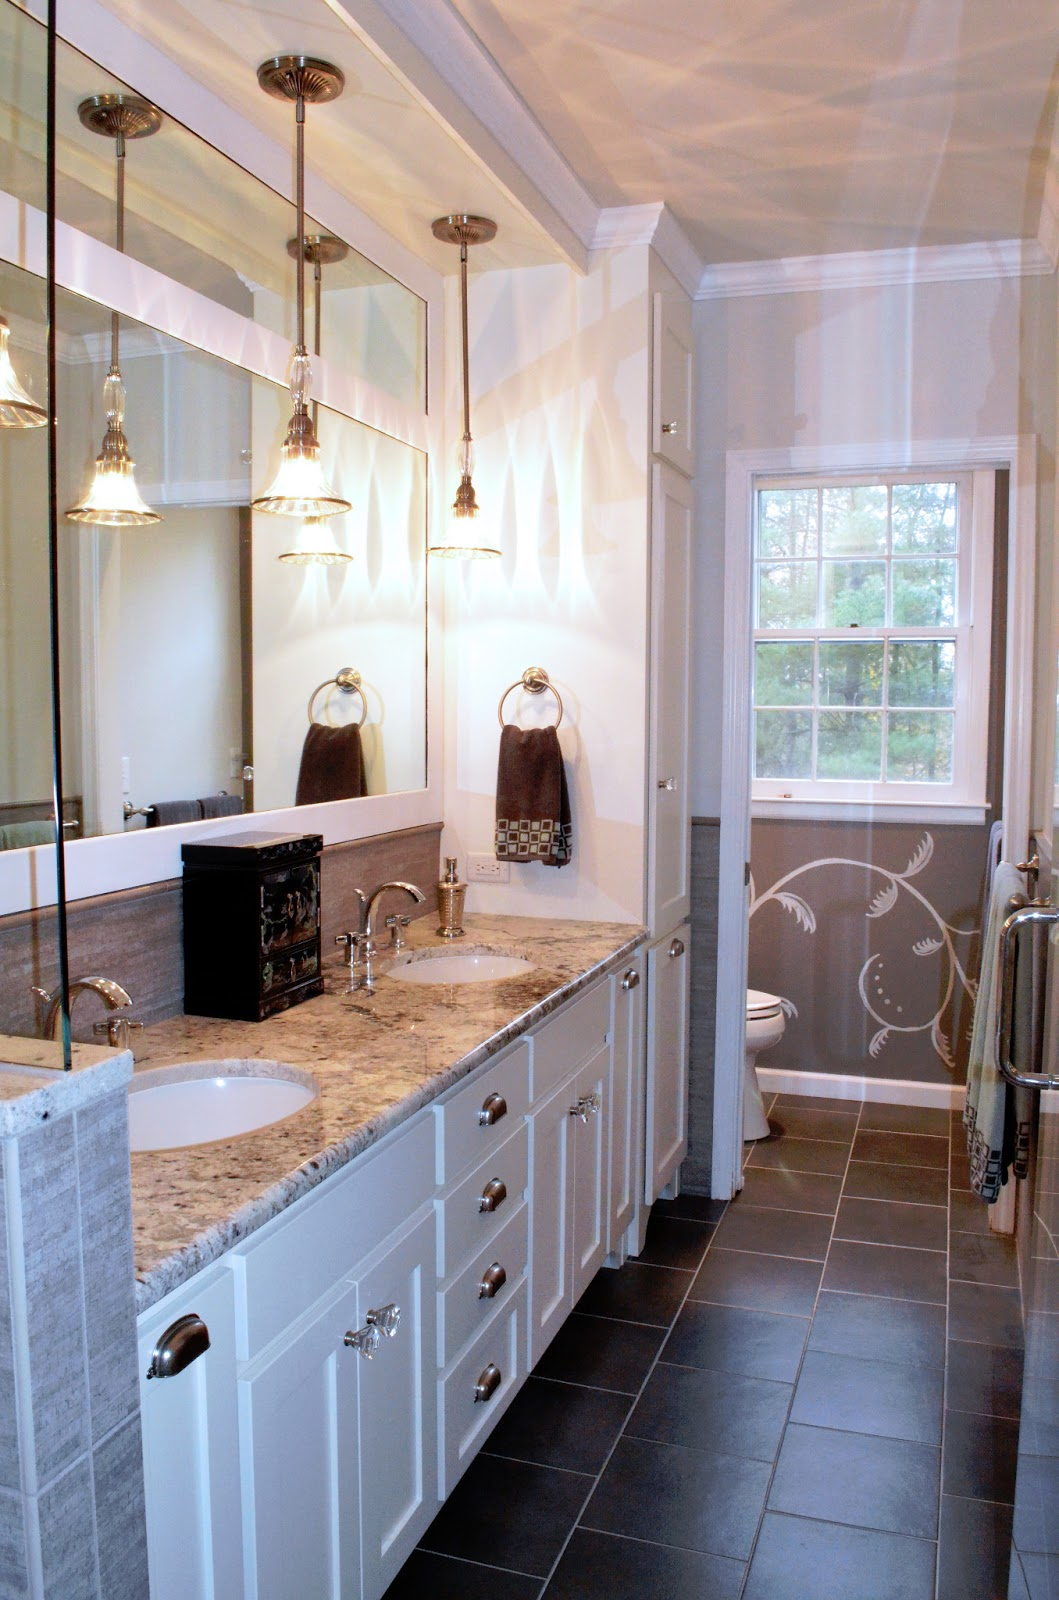 Home design trends the transitional design style for Master bath remodel trends